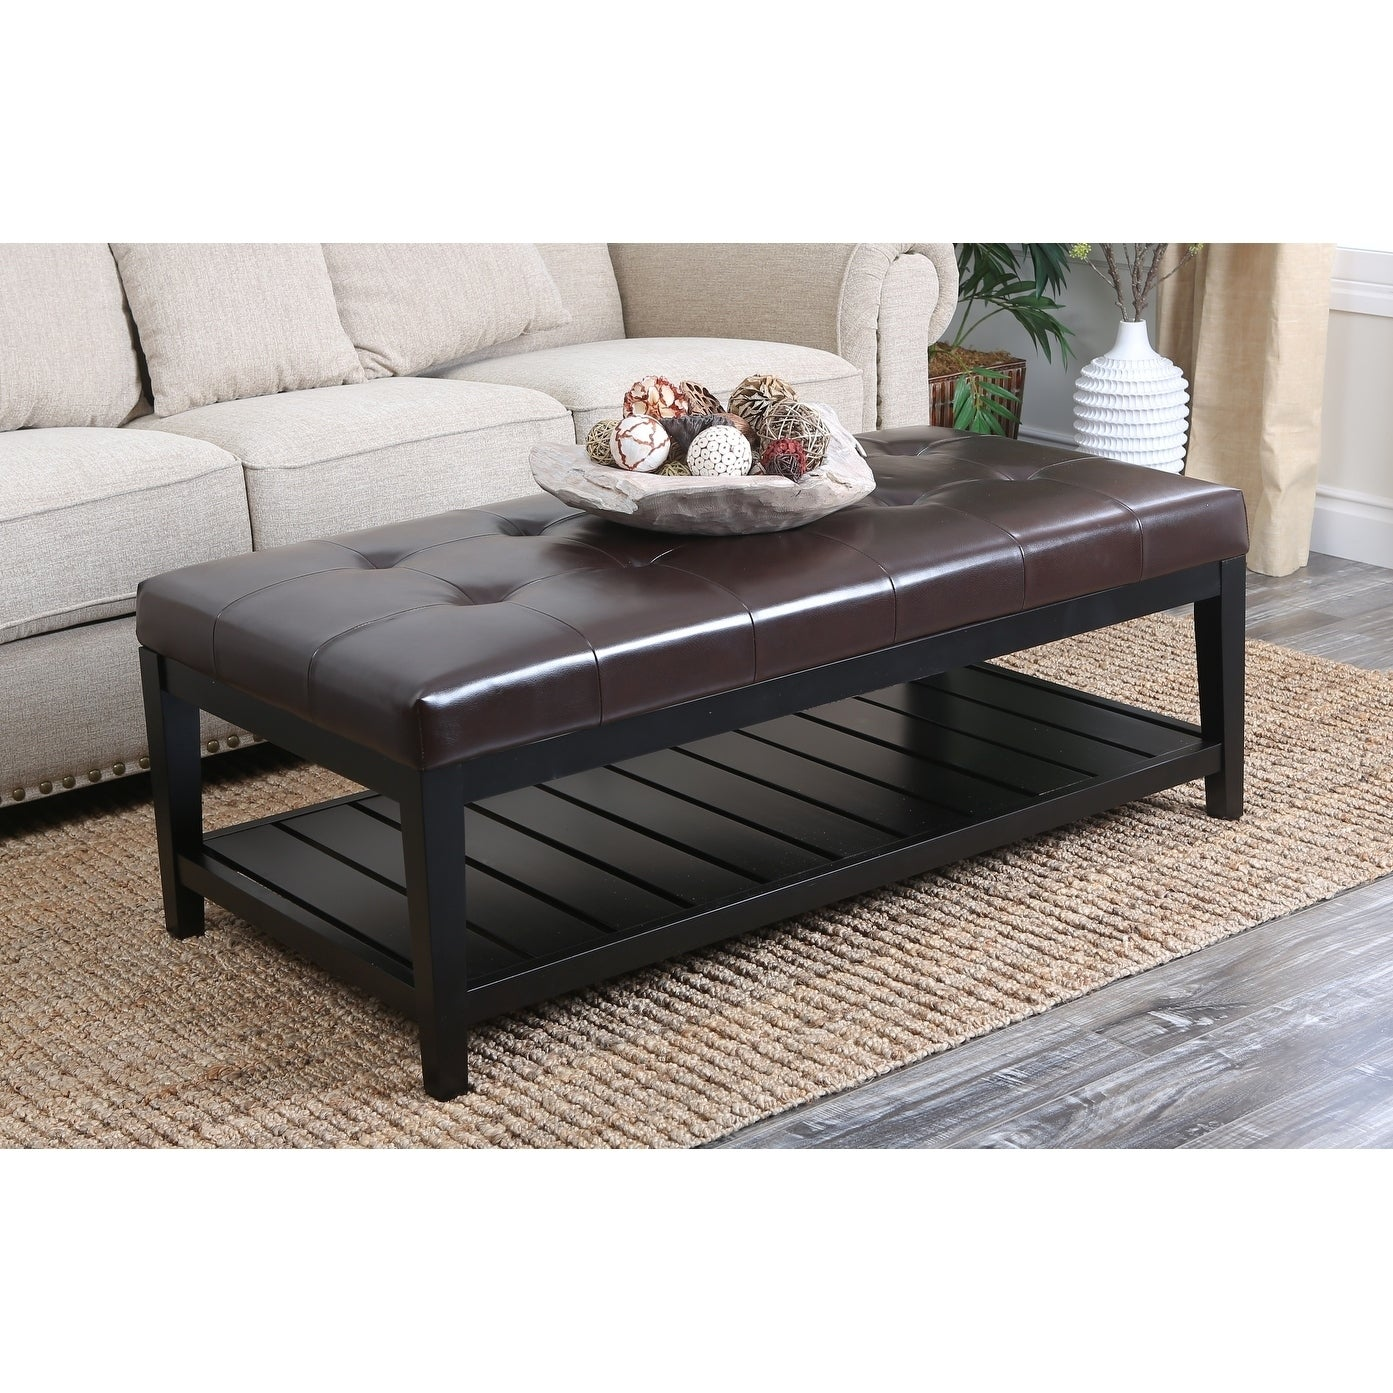 table grain traditional tufted blind top leather coffee